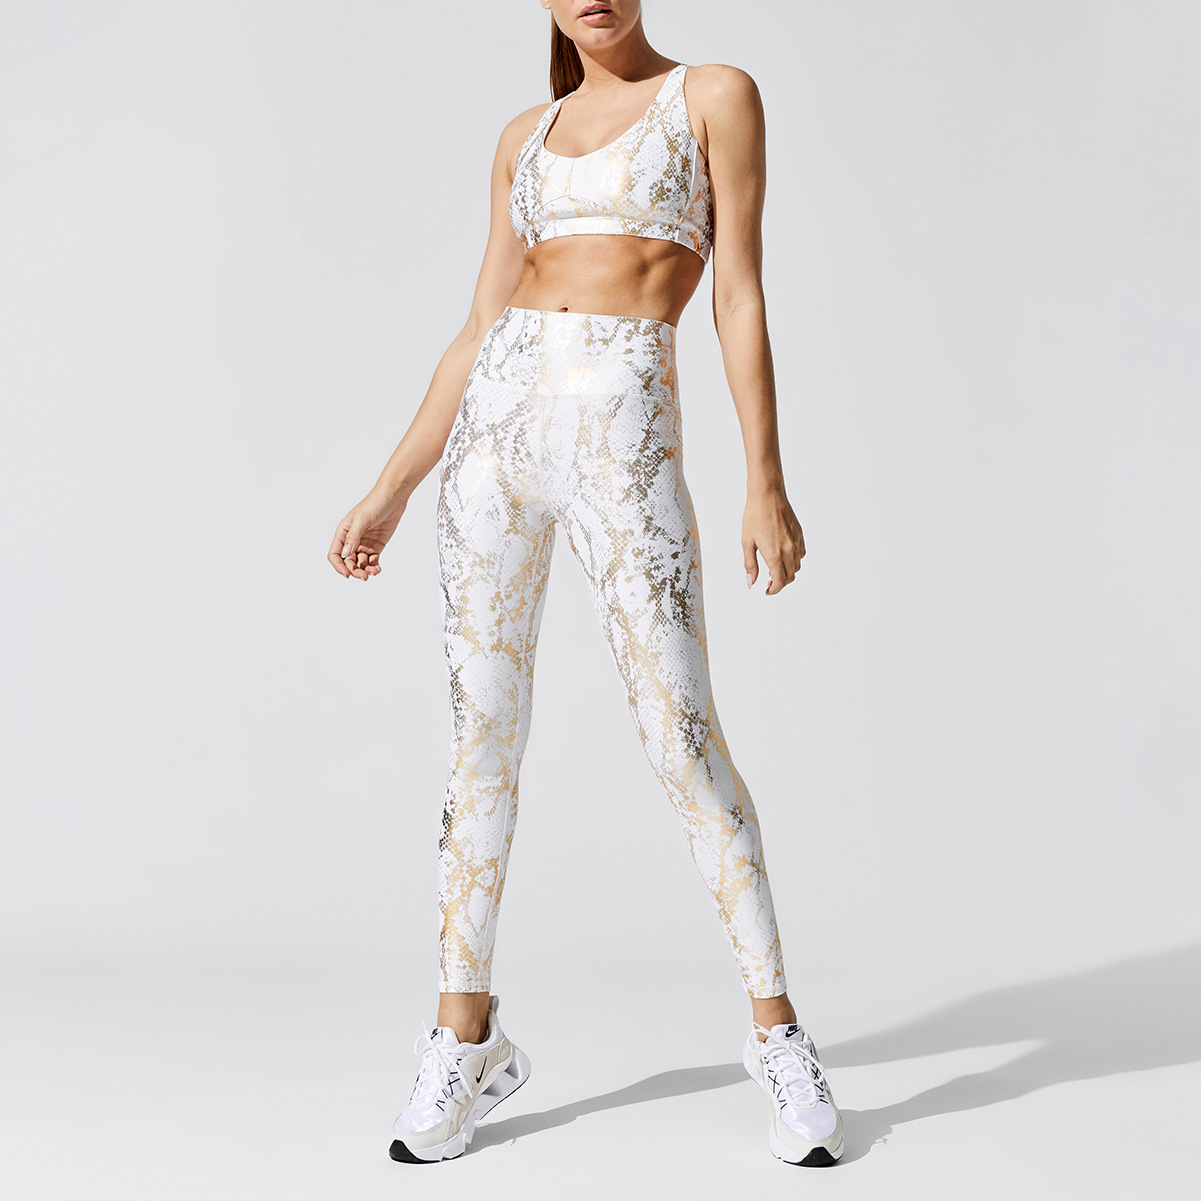 Designed For Workouts And Active Living